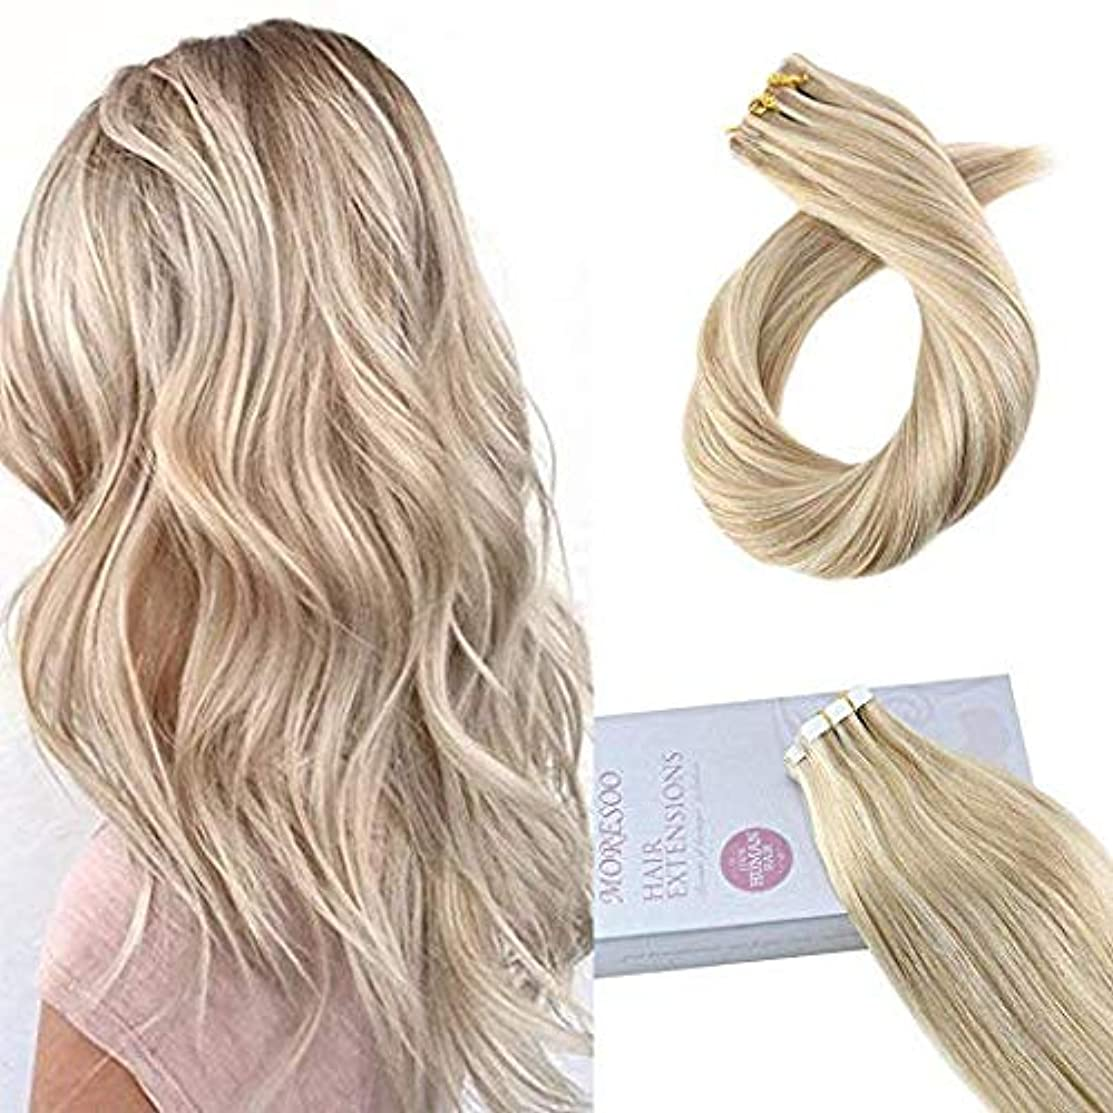 Moresoo Invisible Tape in Human Hair Extensions Blonde 16 Inch 20pcs/50g Two-tone Colored Hair Bleach Blonde #613 Highlighted with Honey Blonde #14 Remy Human Hair